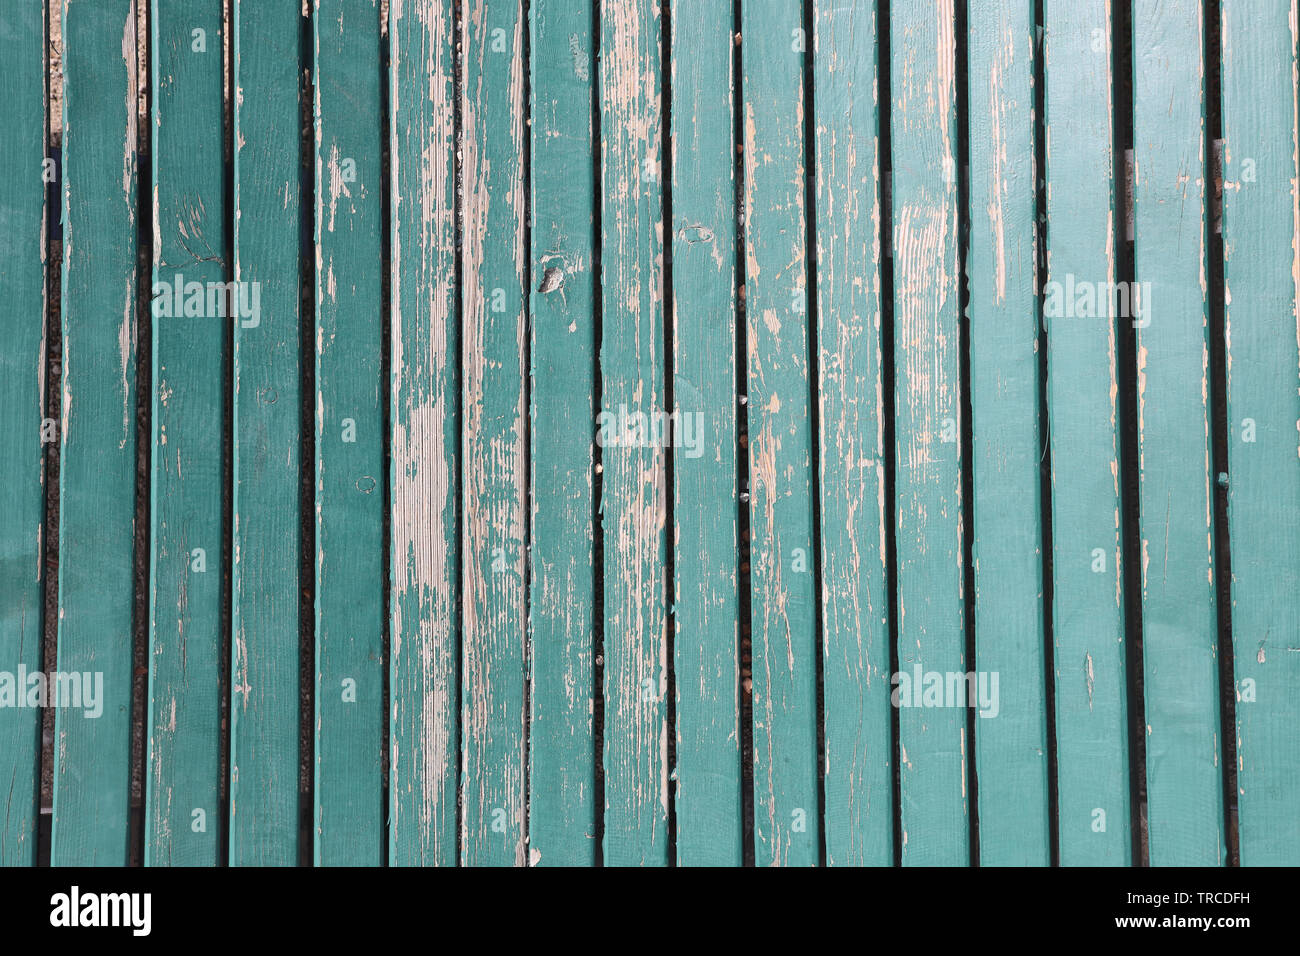 surface with green painted wooden planks - Stock Image